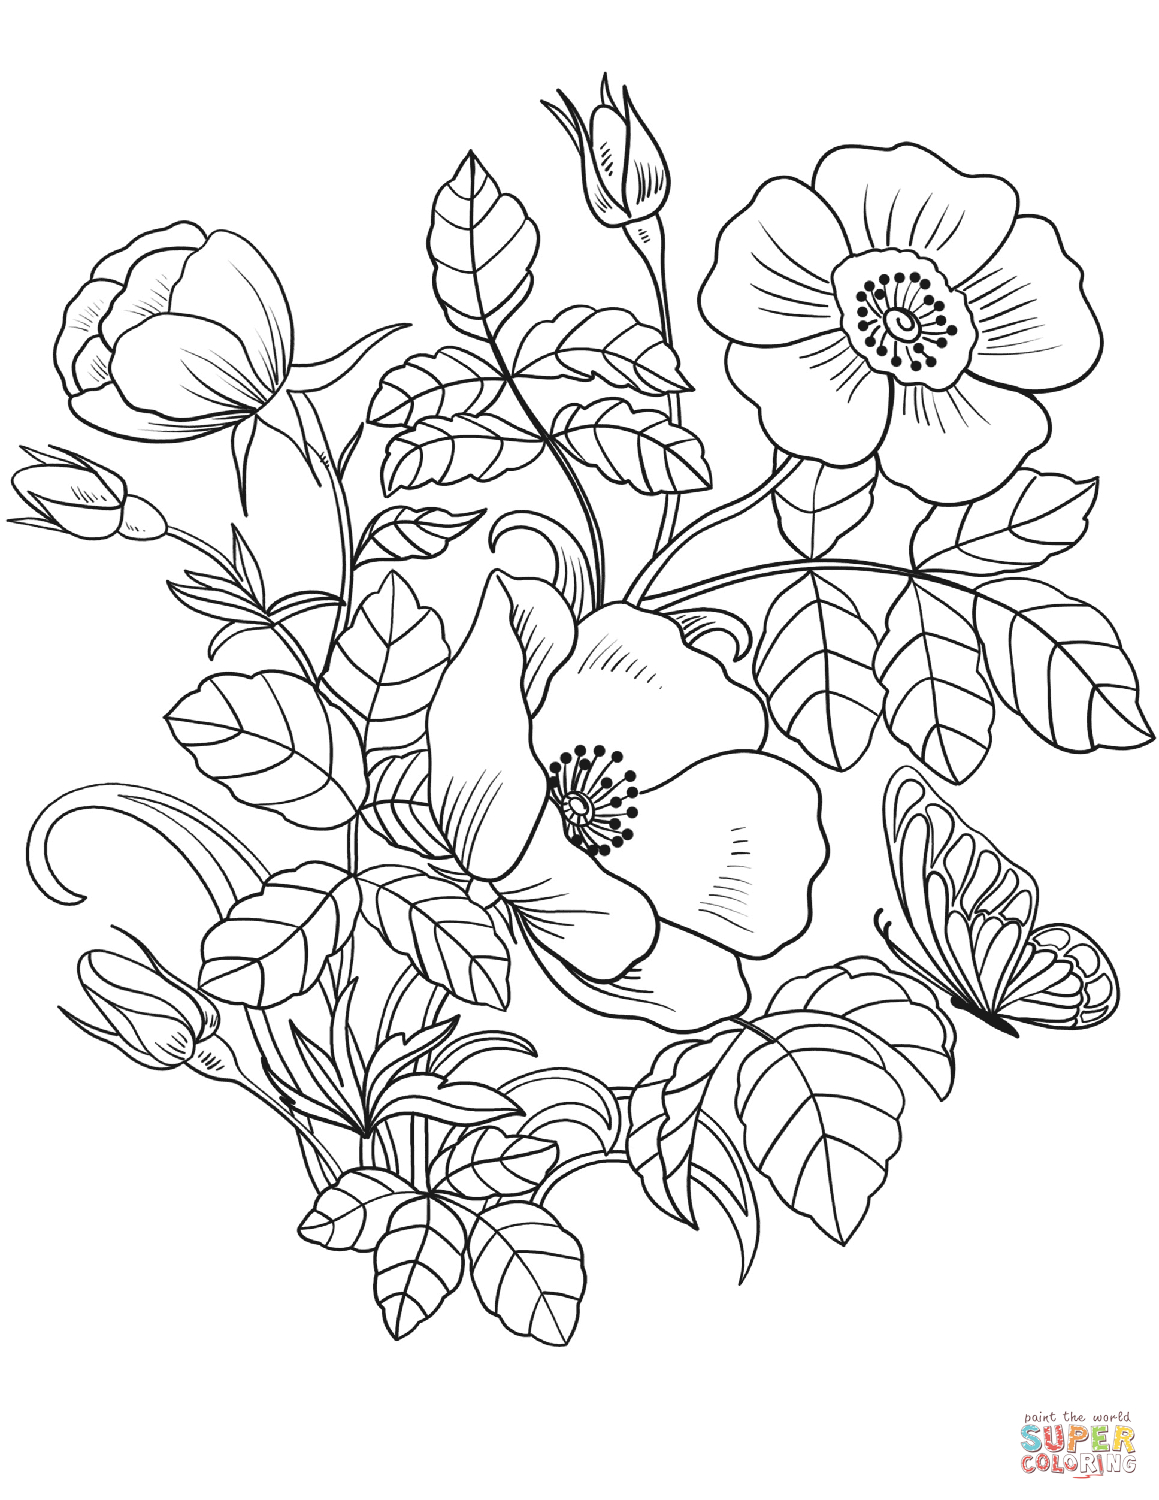 25+ Creative Photo of Spring Flowers Coloring Pages